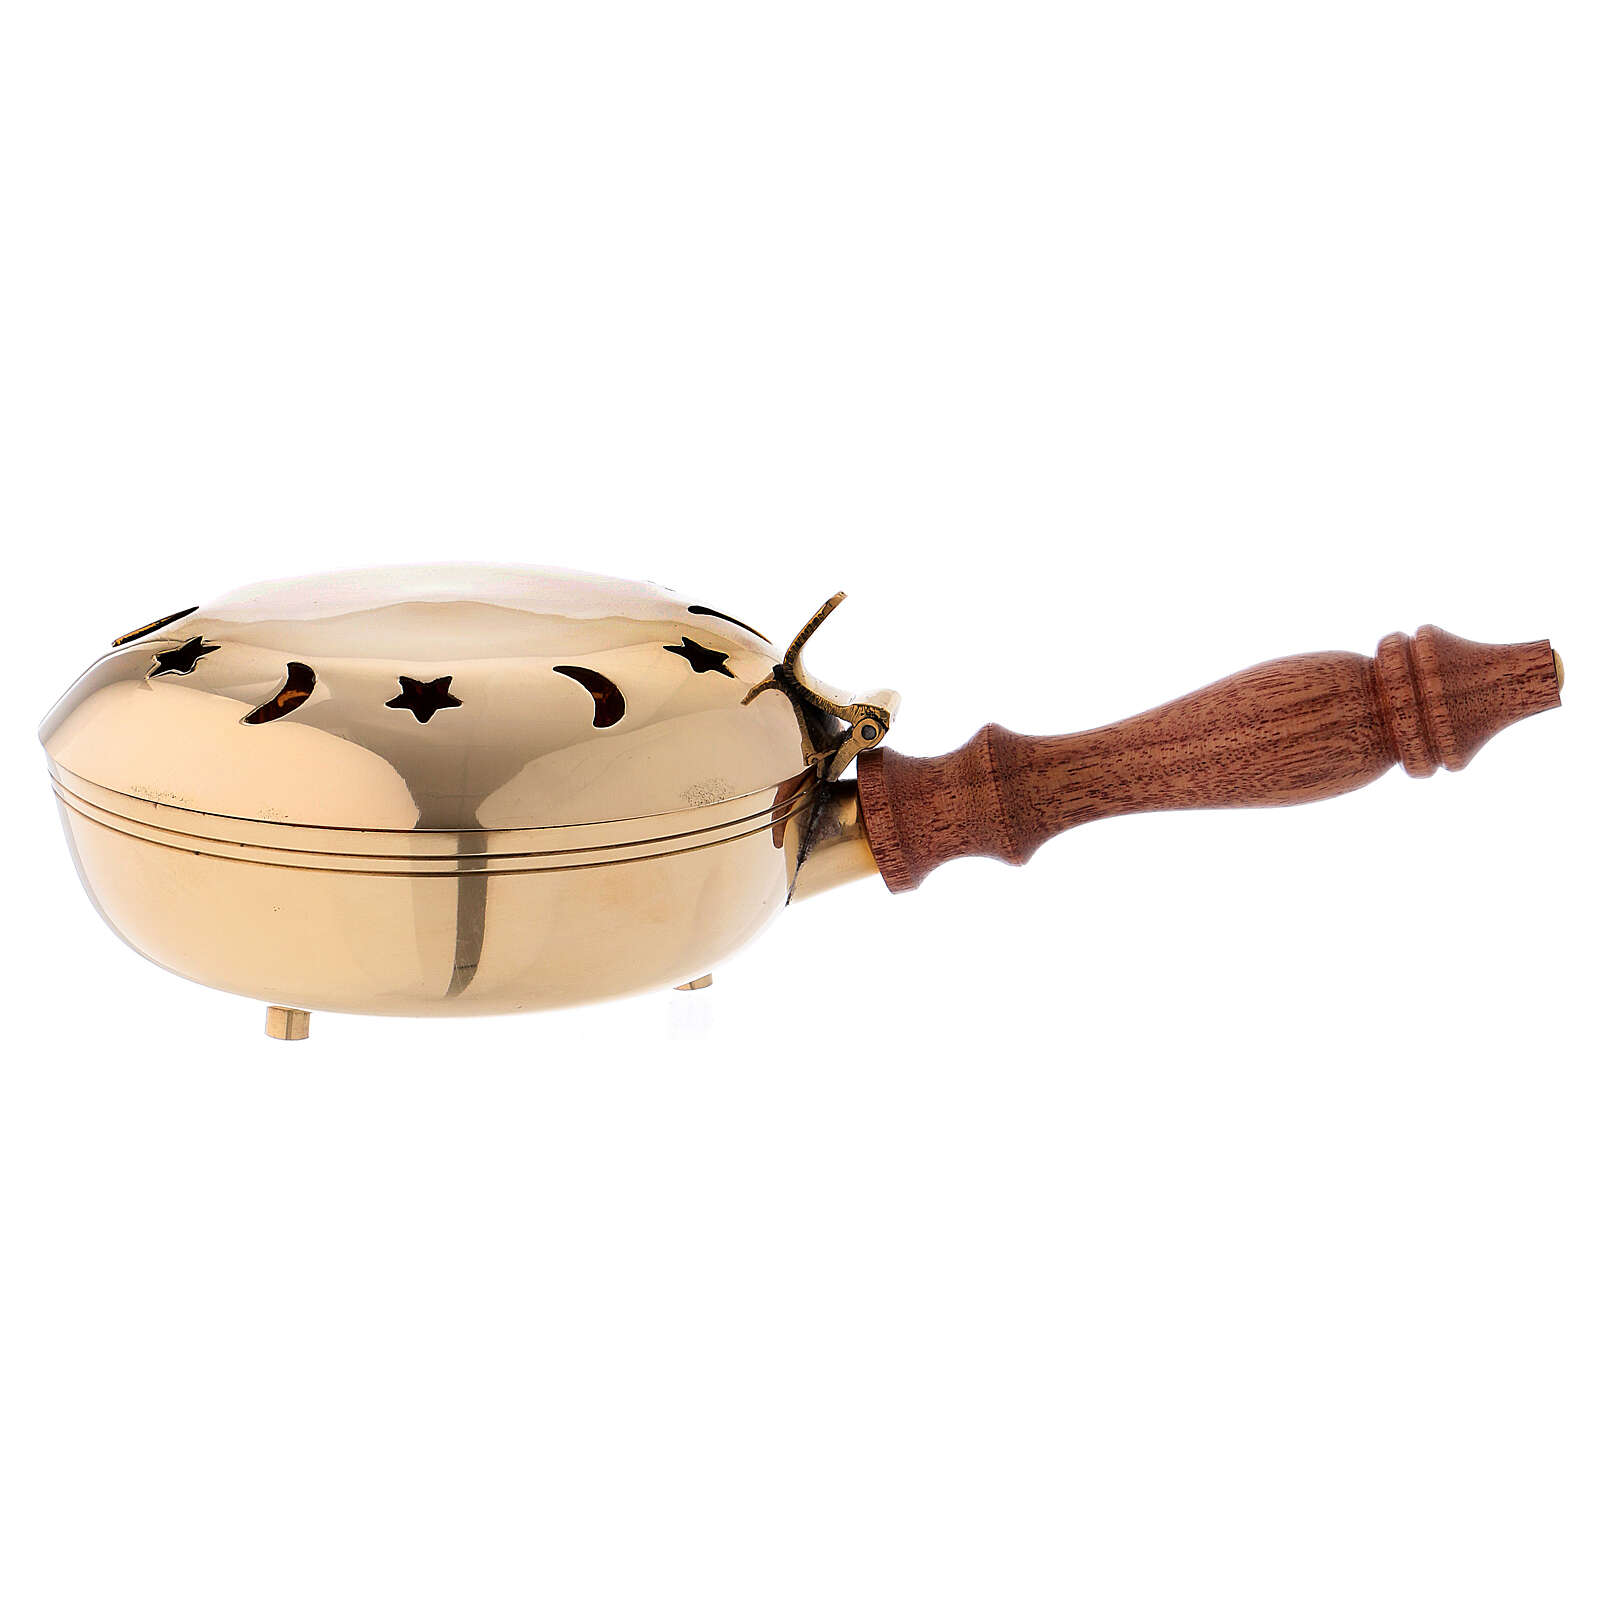 Incense burner in gold plated brass wood handle 3